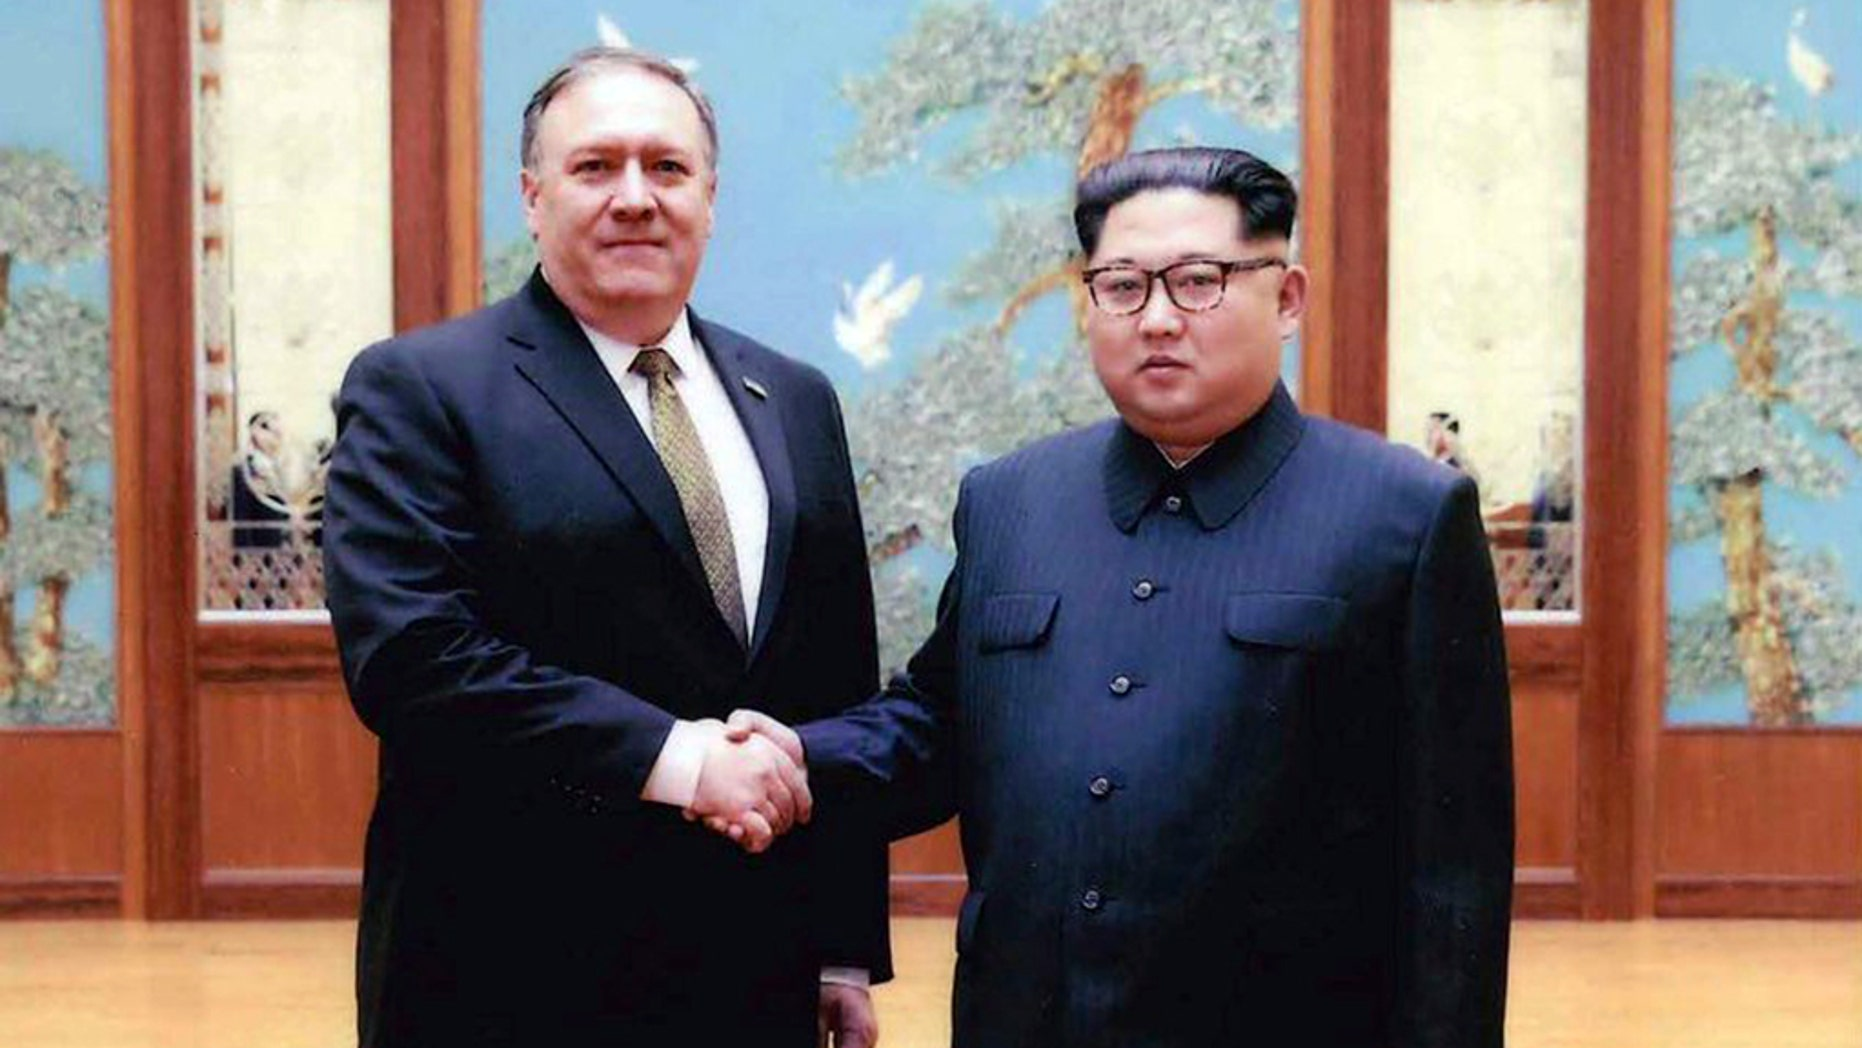 New photos were released Thursday of the Easter weekend meeting between then-CIA Director Mike Pompeo and North Korean leader Kim Jong Un.